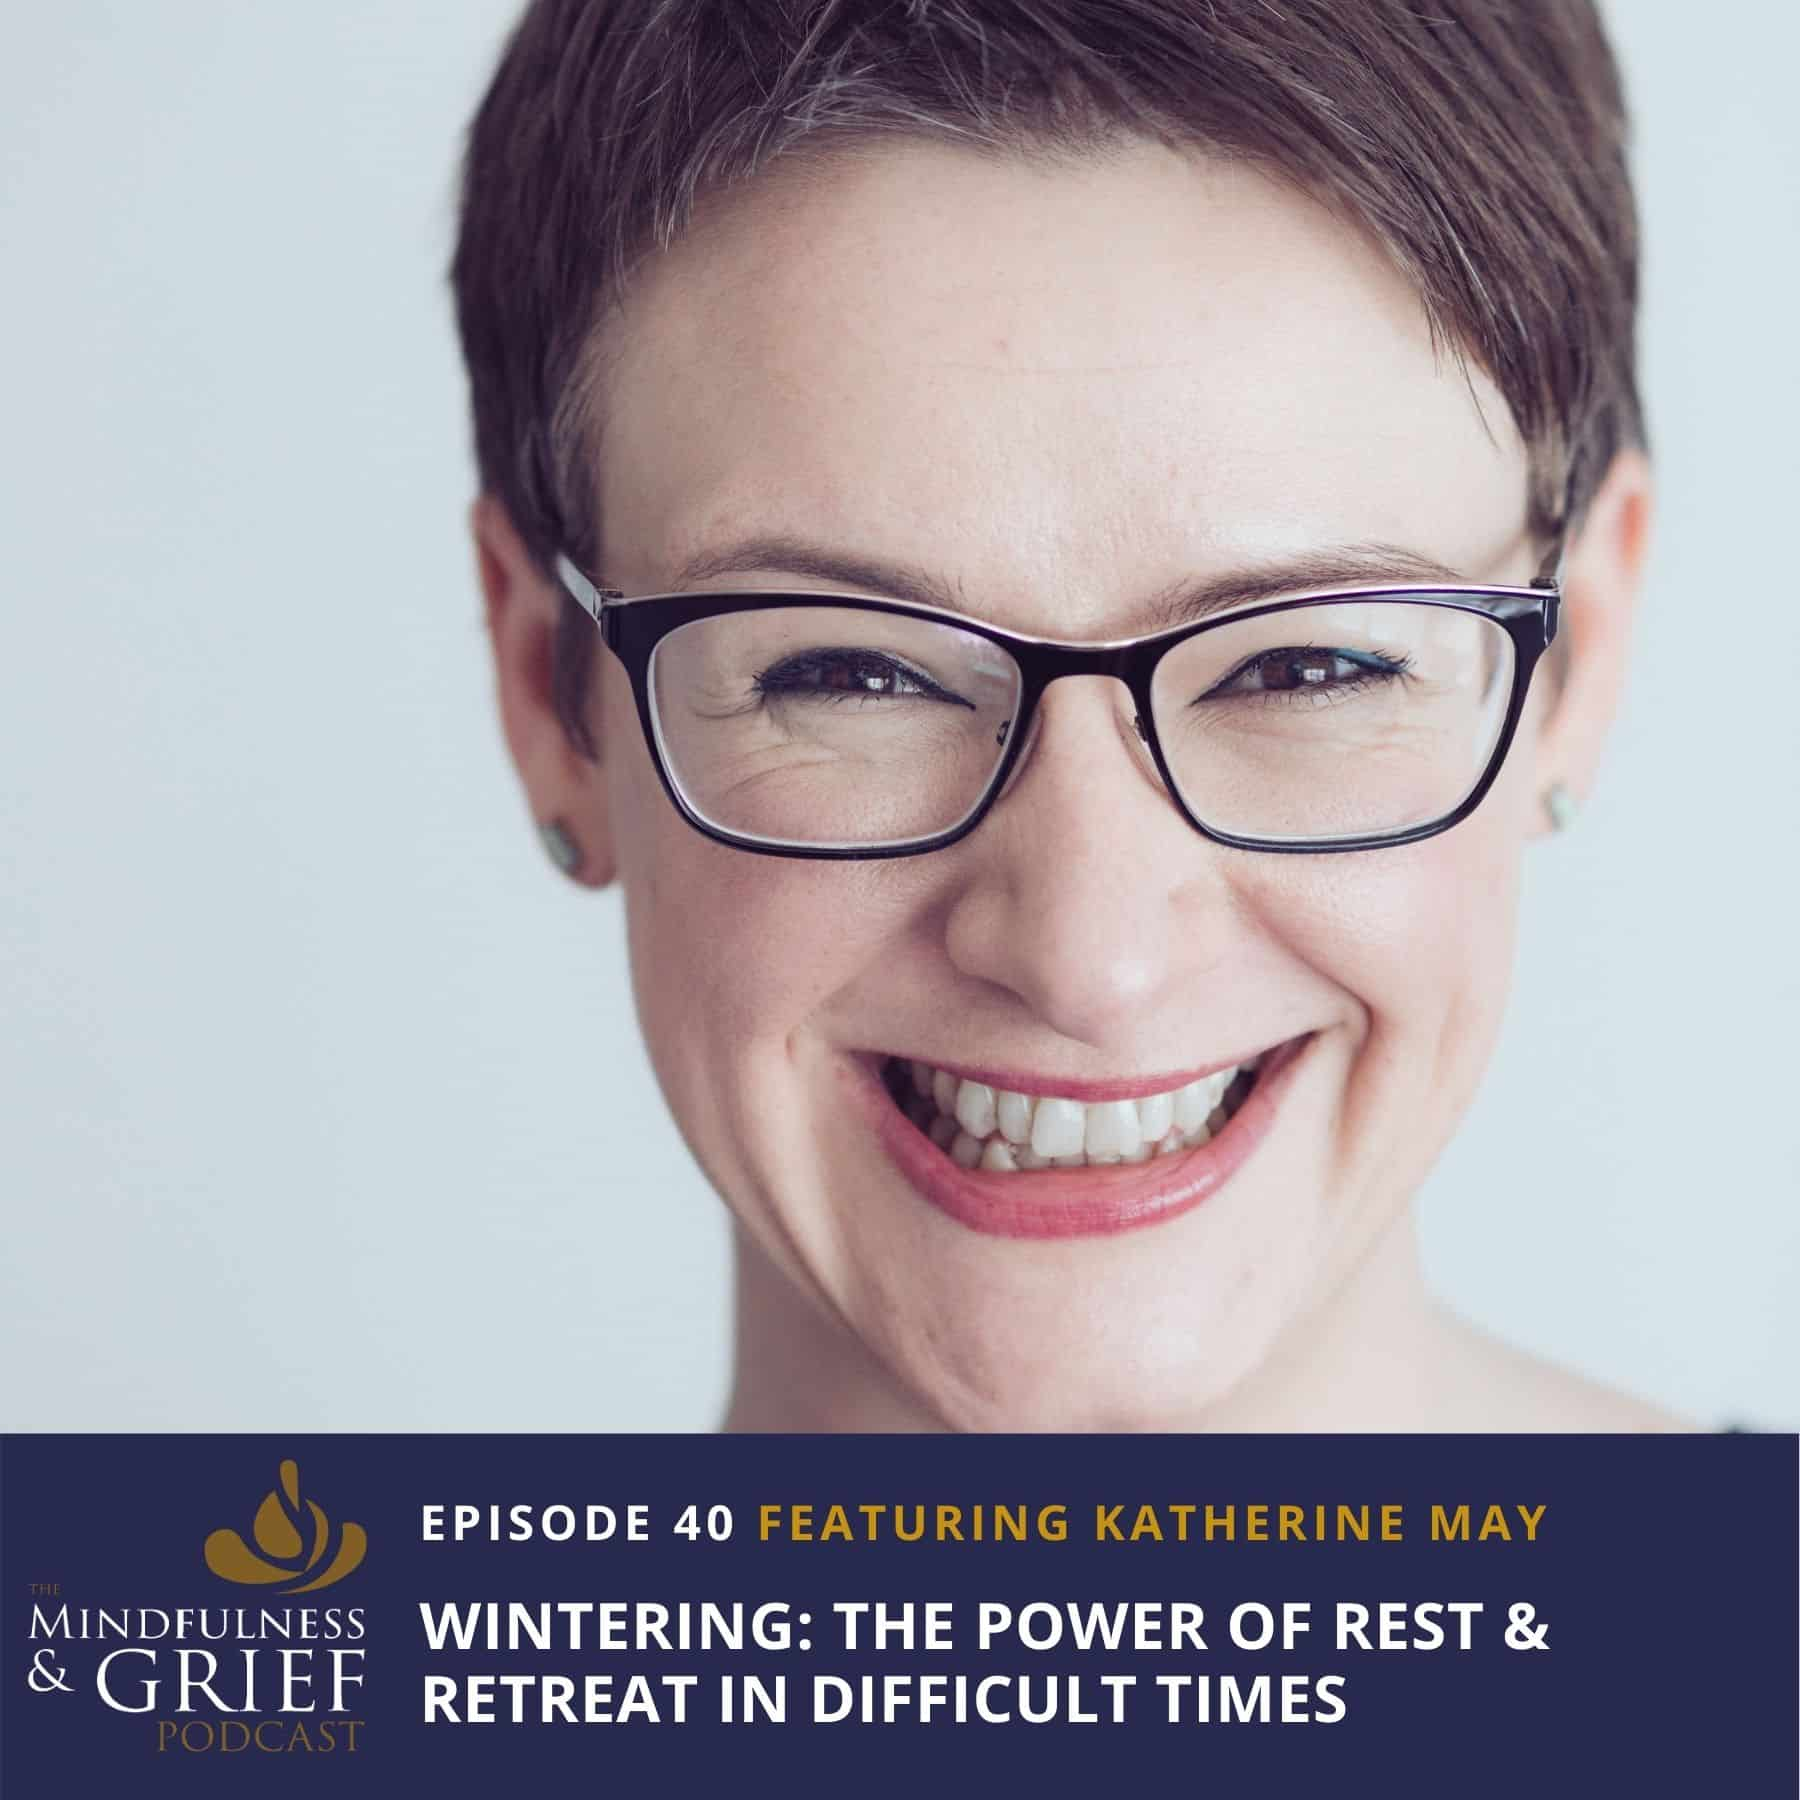 Wintering with Katherine May